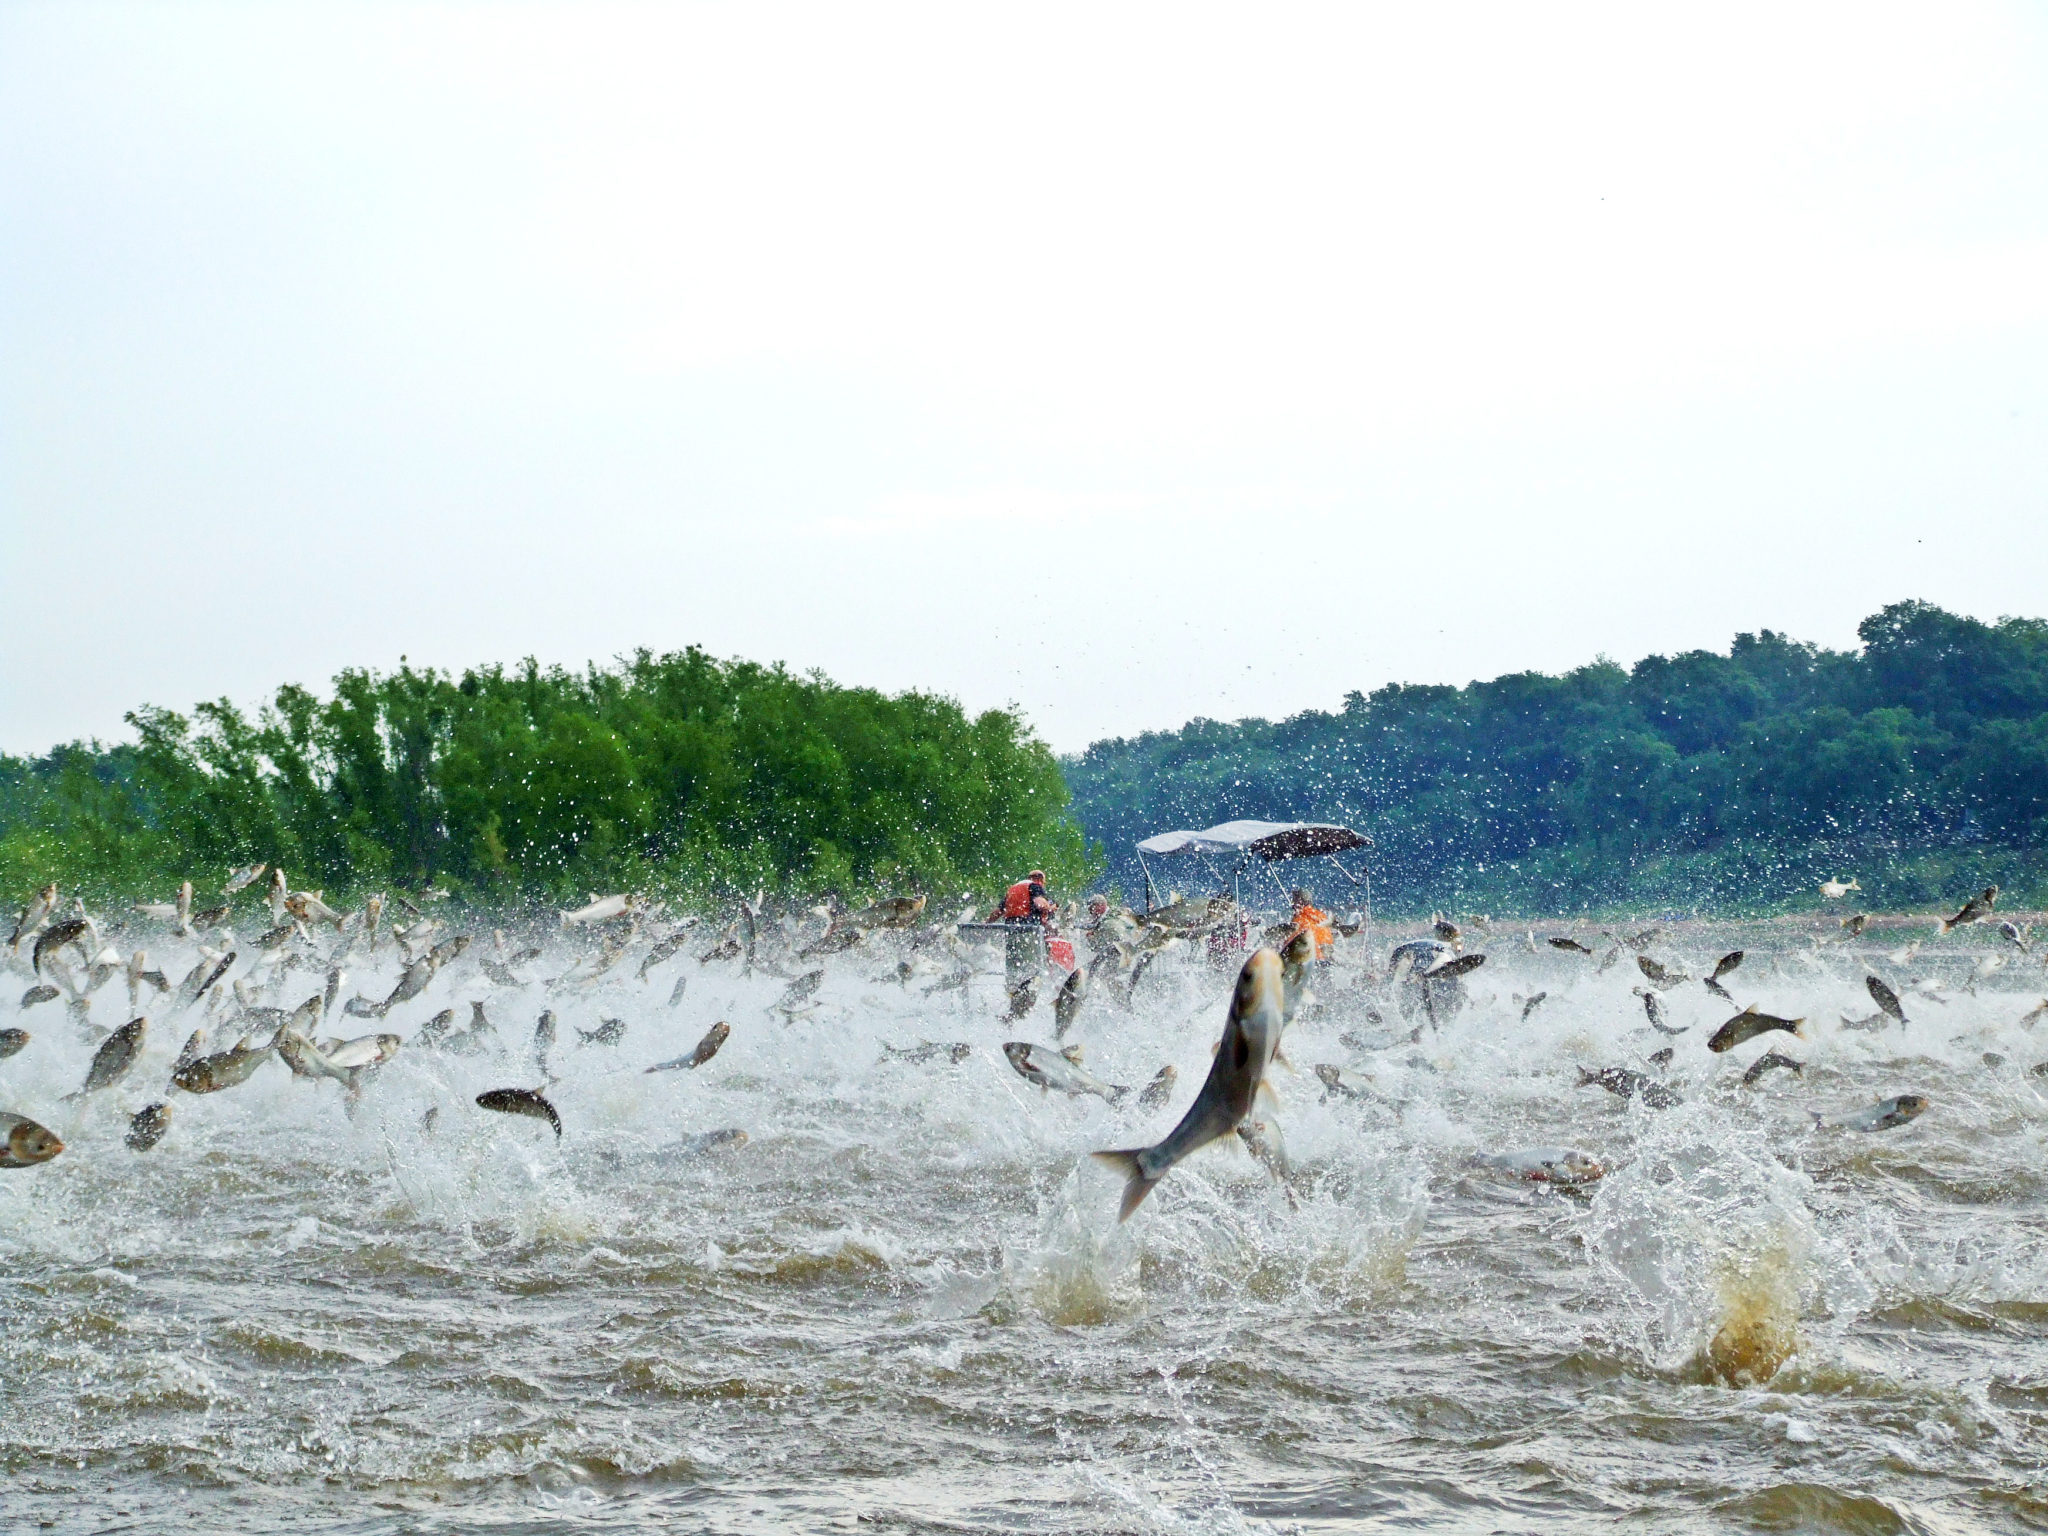 report - carp jumping out of the water